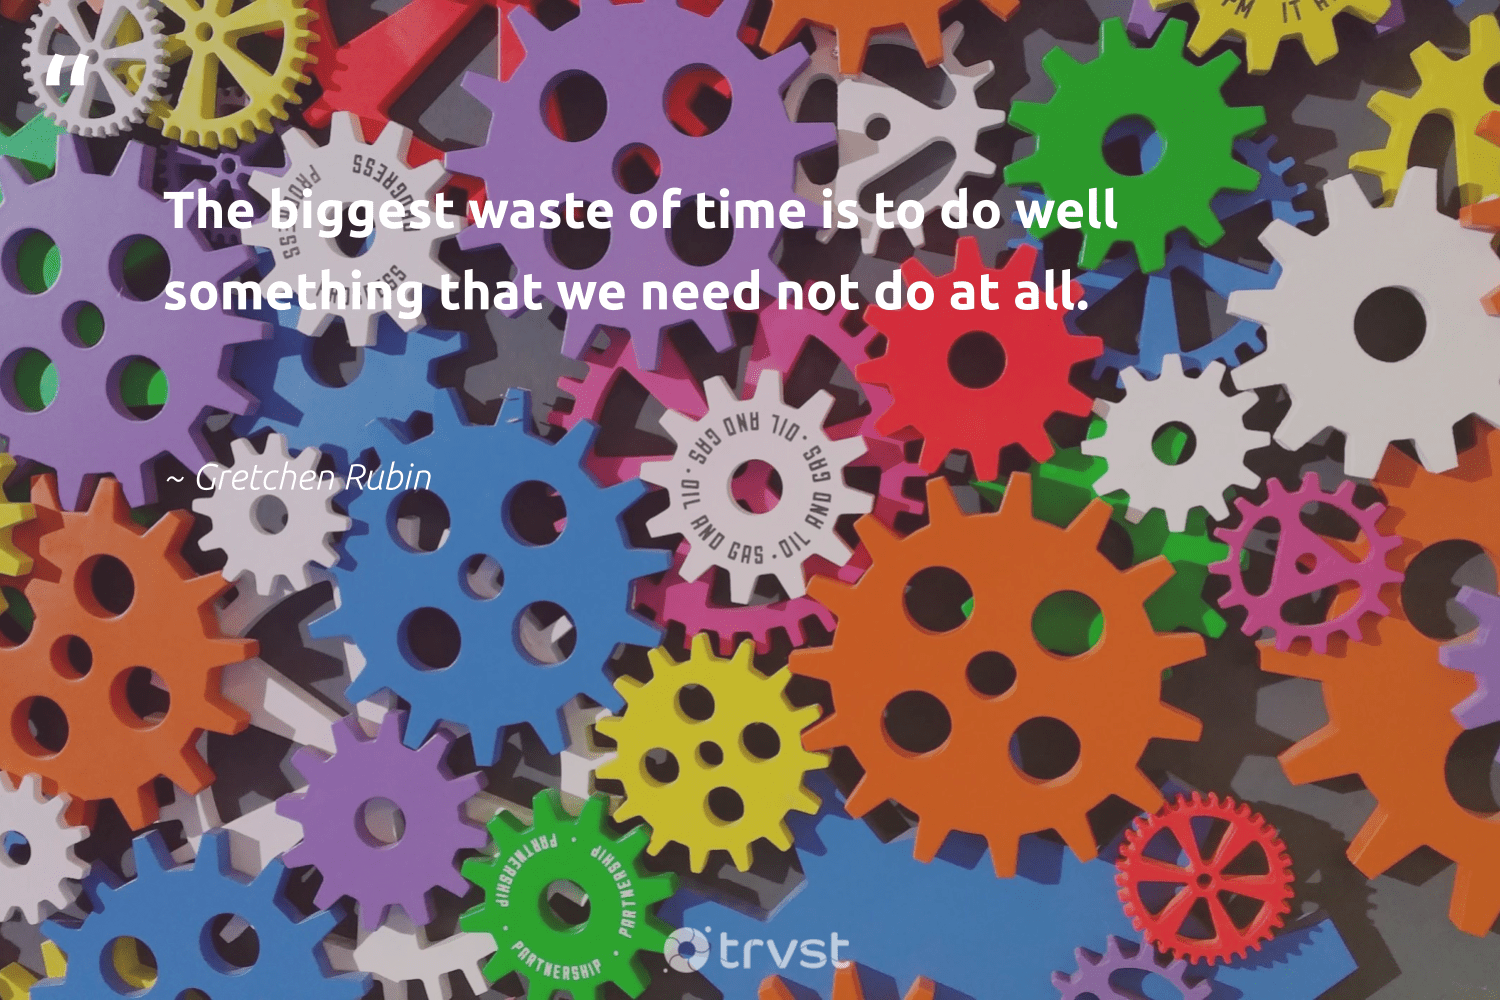 """The biggest waste of time is to do well something that we need not do at all.""  - Gretchen Rubin #trvst #quotes #waste #giveback #socialchange #ethicalbusiness #dogood #weareallone #socialimpact #betterplanet #takeaction #makeadifference"